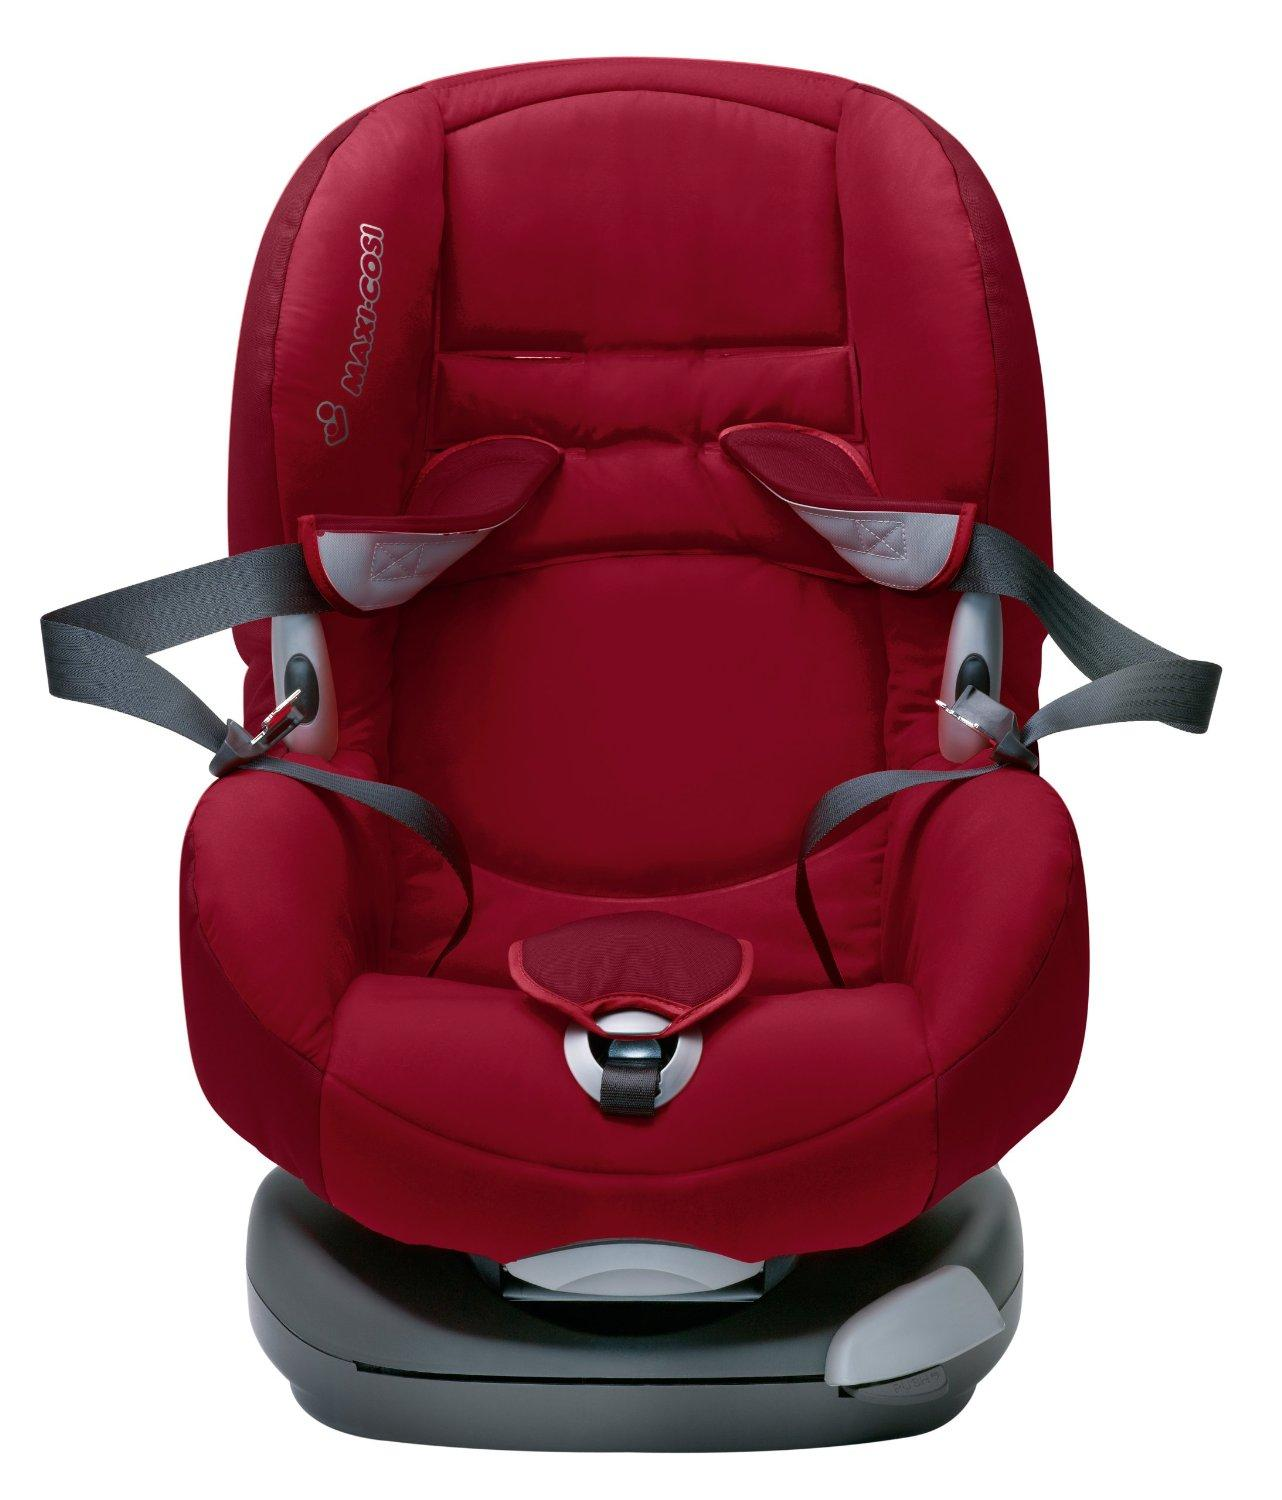 maxi cosi priori xp group 1 car seat shadow red amazon. Black Bedroom Furniture Sets. Home Design Ideas